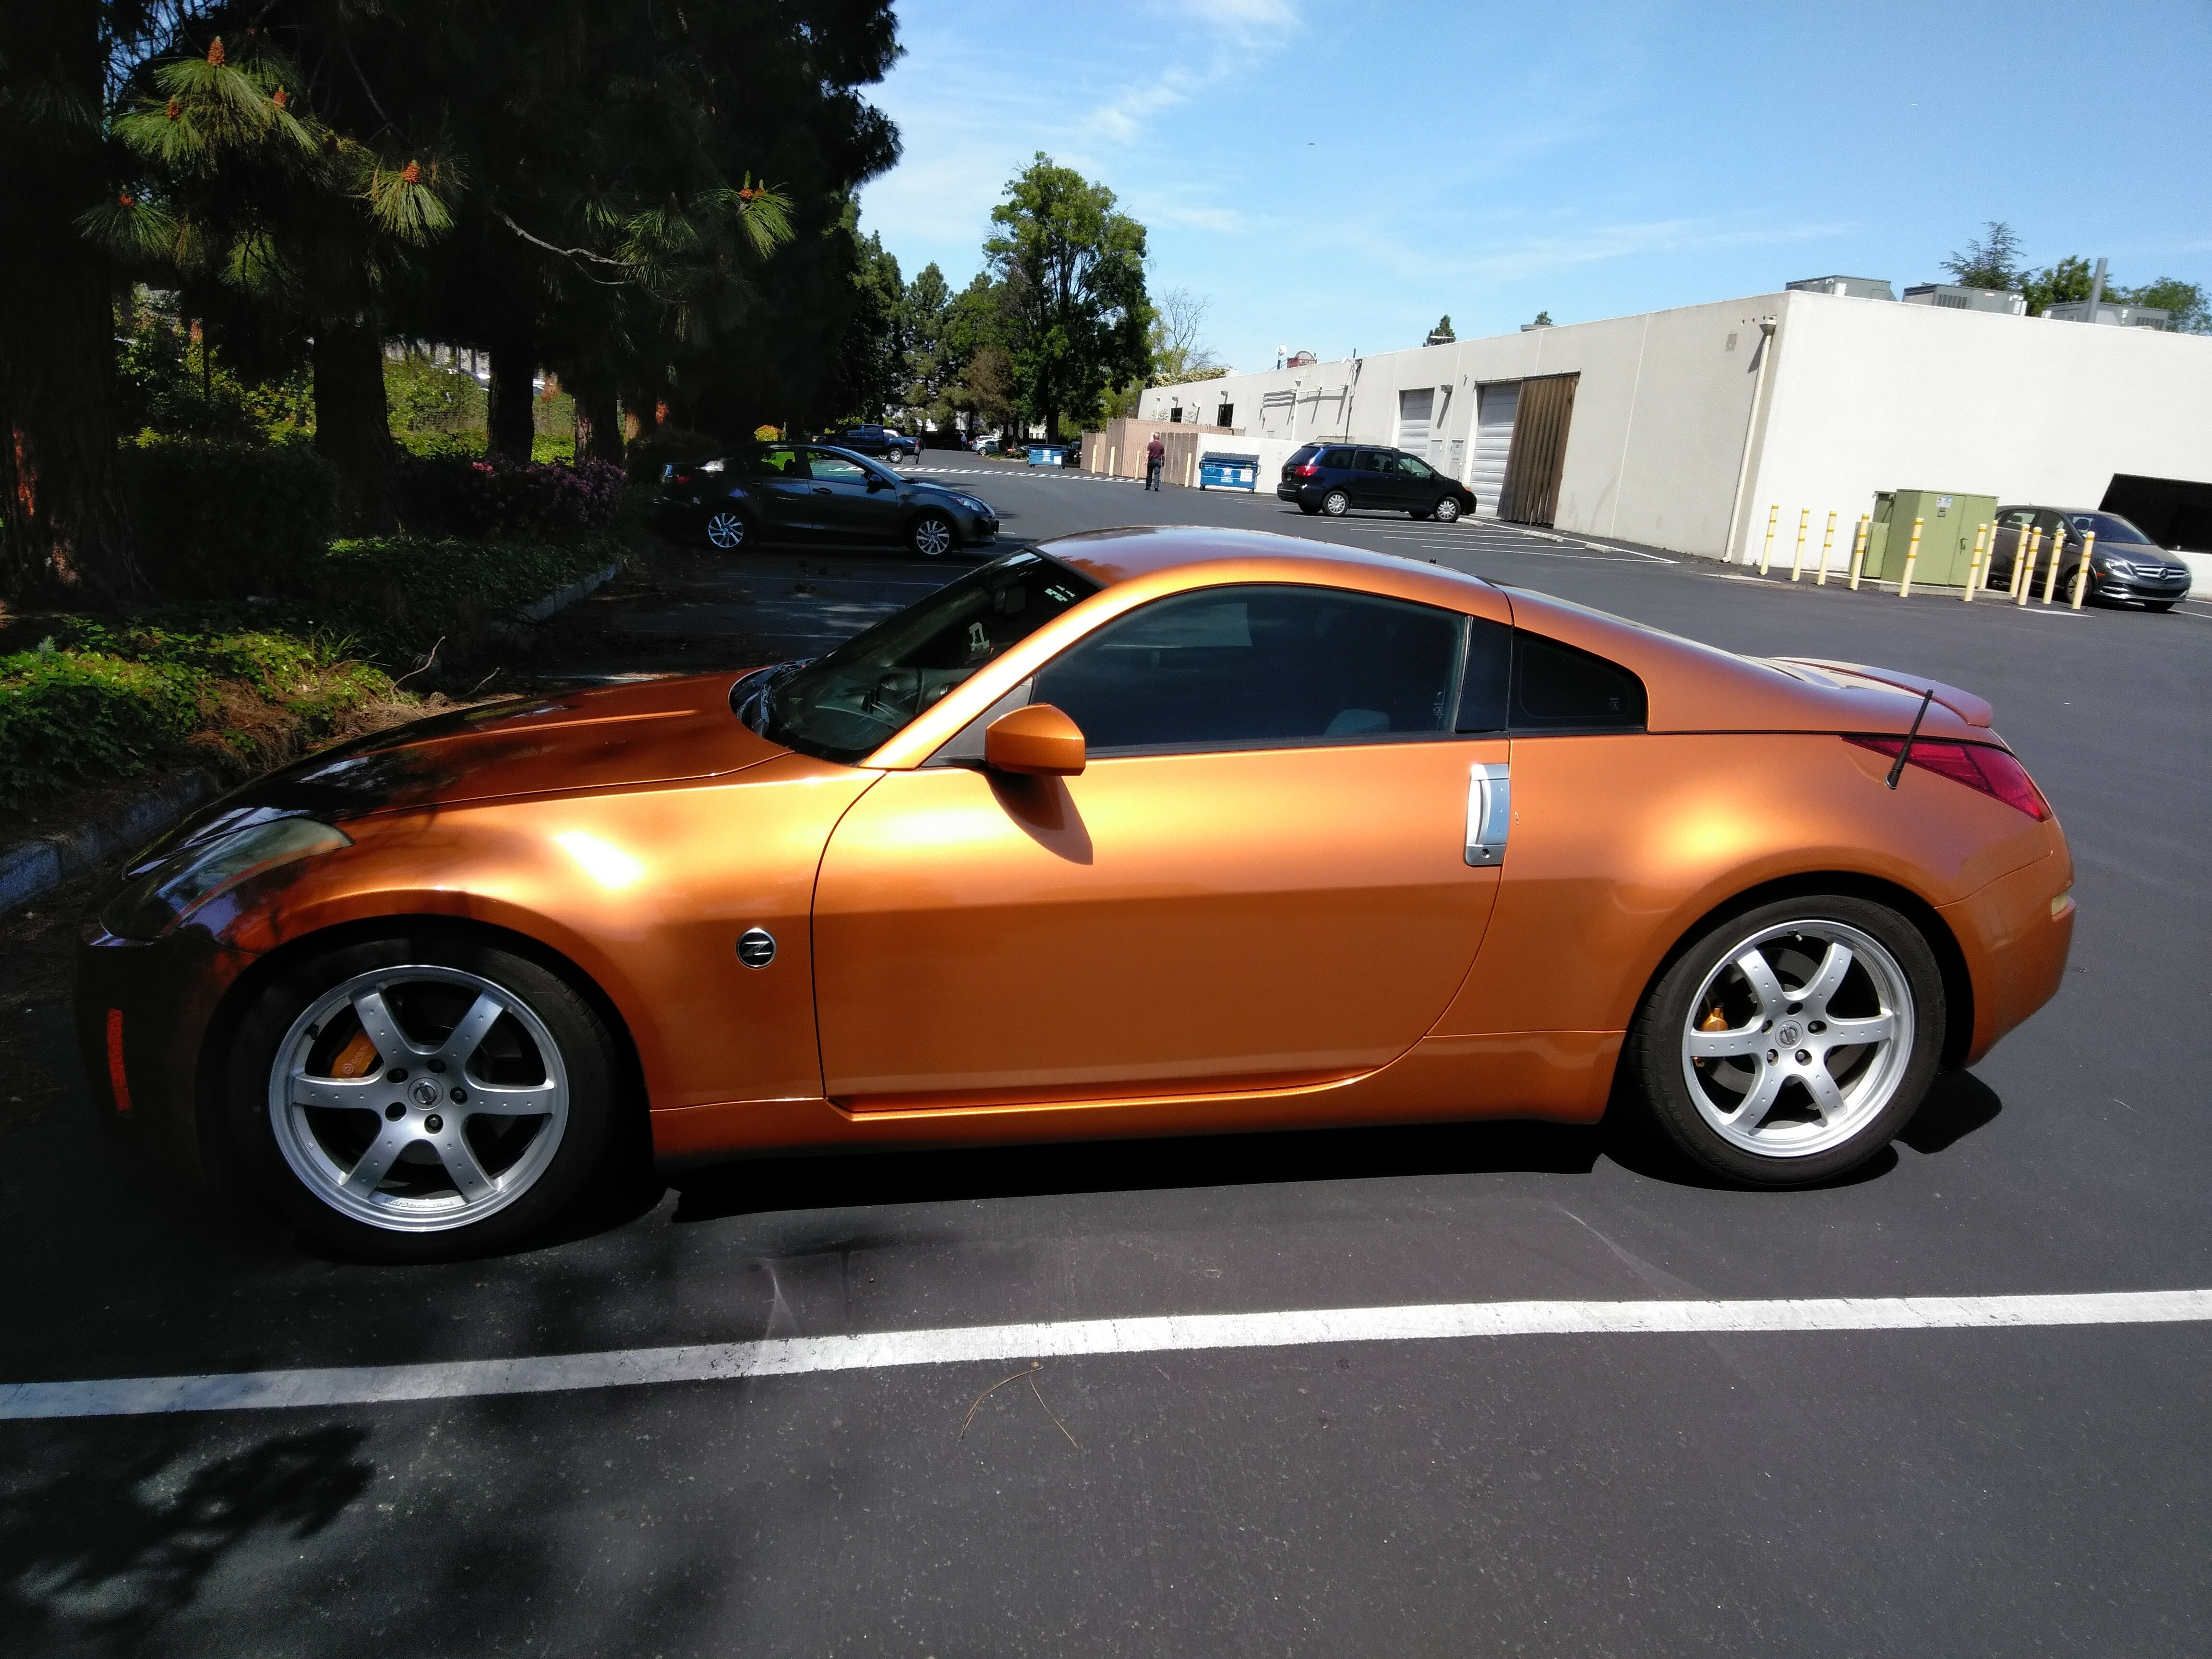 350z nissan track 2003 supercharged vortech ruben contact